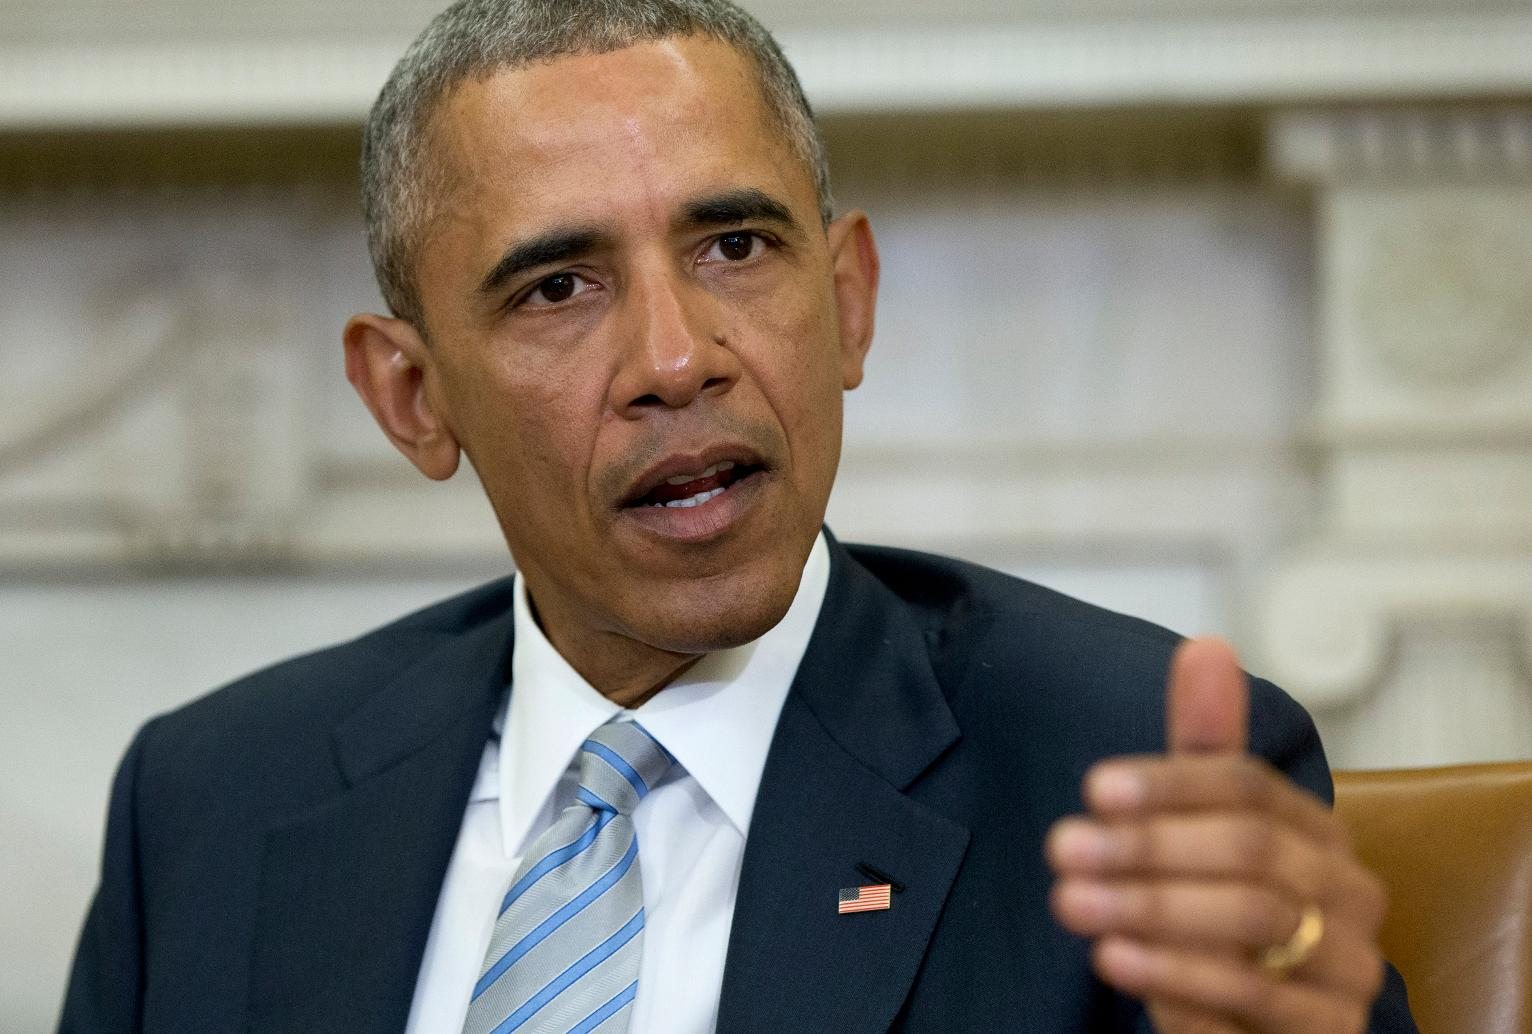 Obama meeting with civil rights leaders at the white house us news - Houses romanias political leaders ...